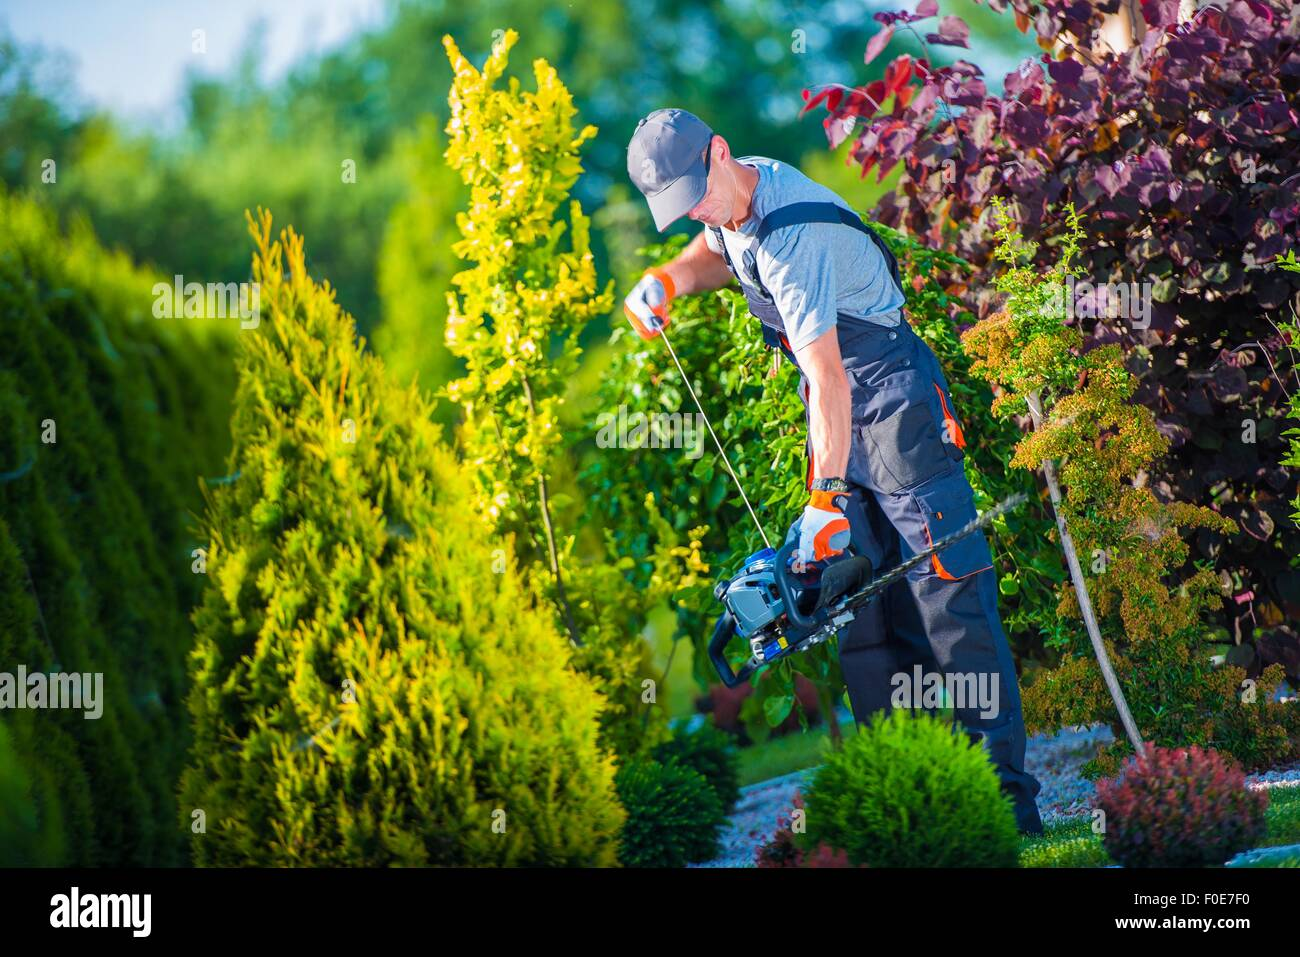 Firing Up Gasoline Hedge Trimmer by Professional Gardener. Garden Works. Trimming Hedge. - Stock Image